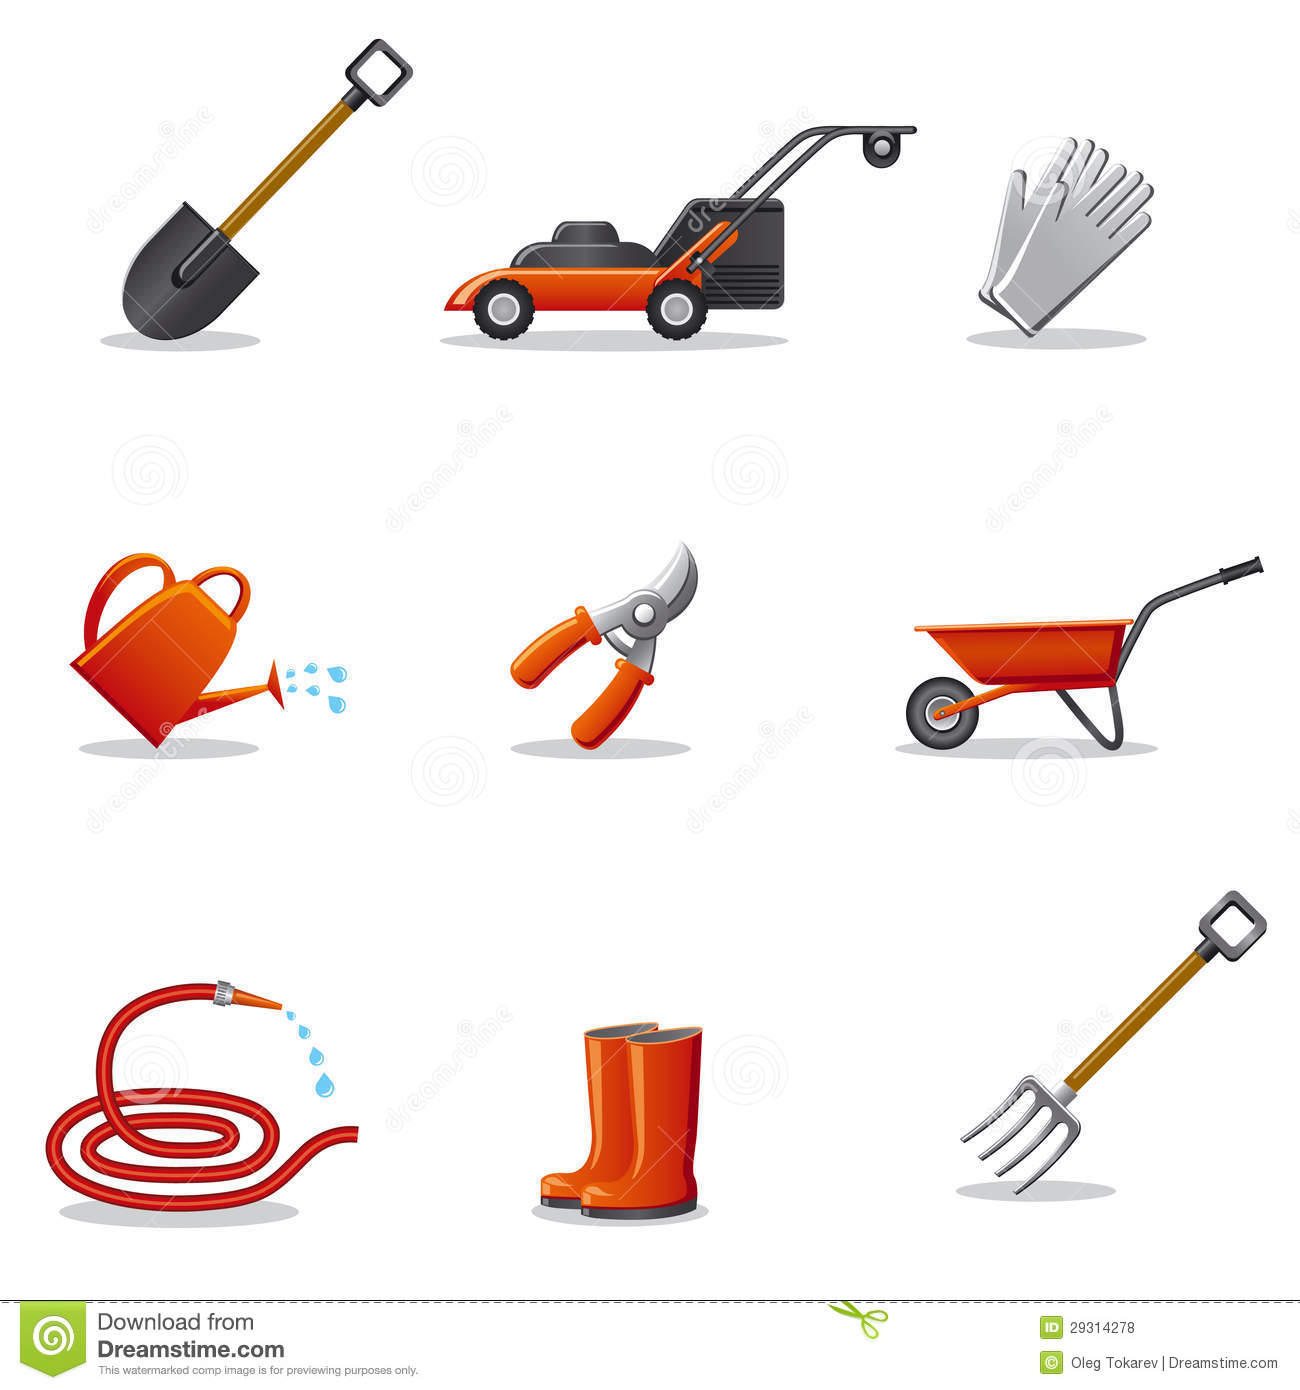 Garden tools icon set royalty free stock photos image for Gardening tools list with pictures